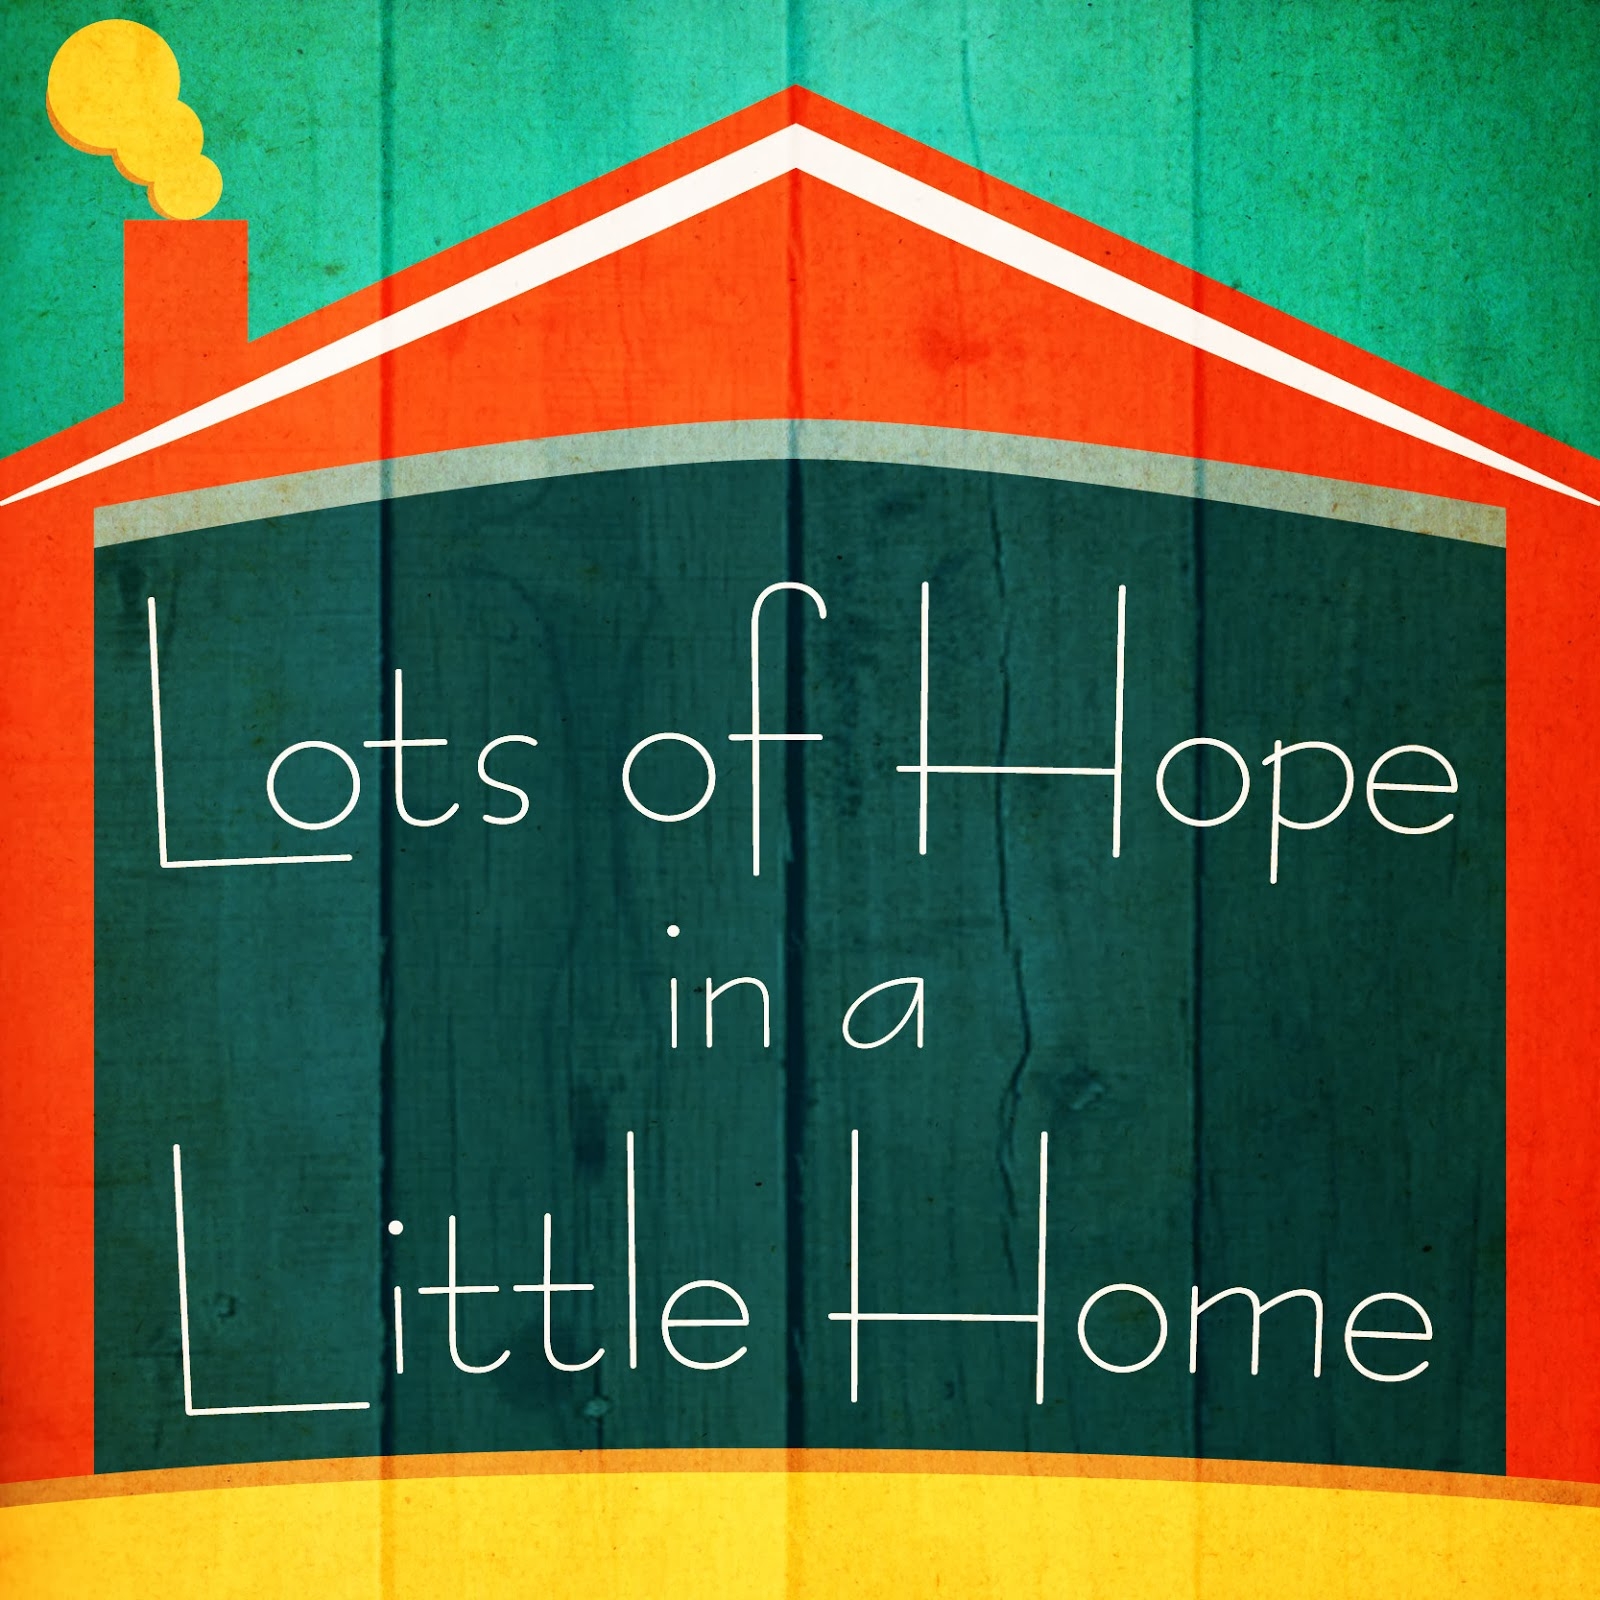 Lots of hope in a little home